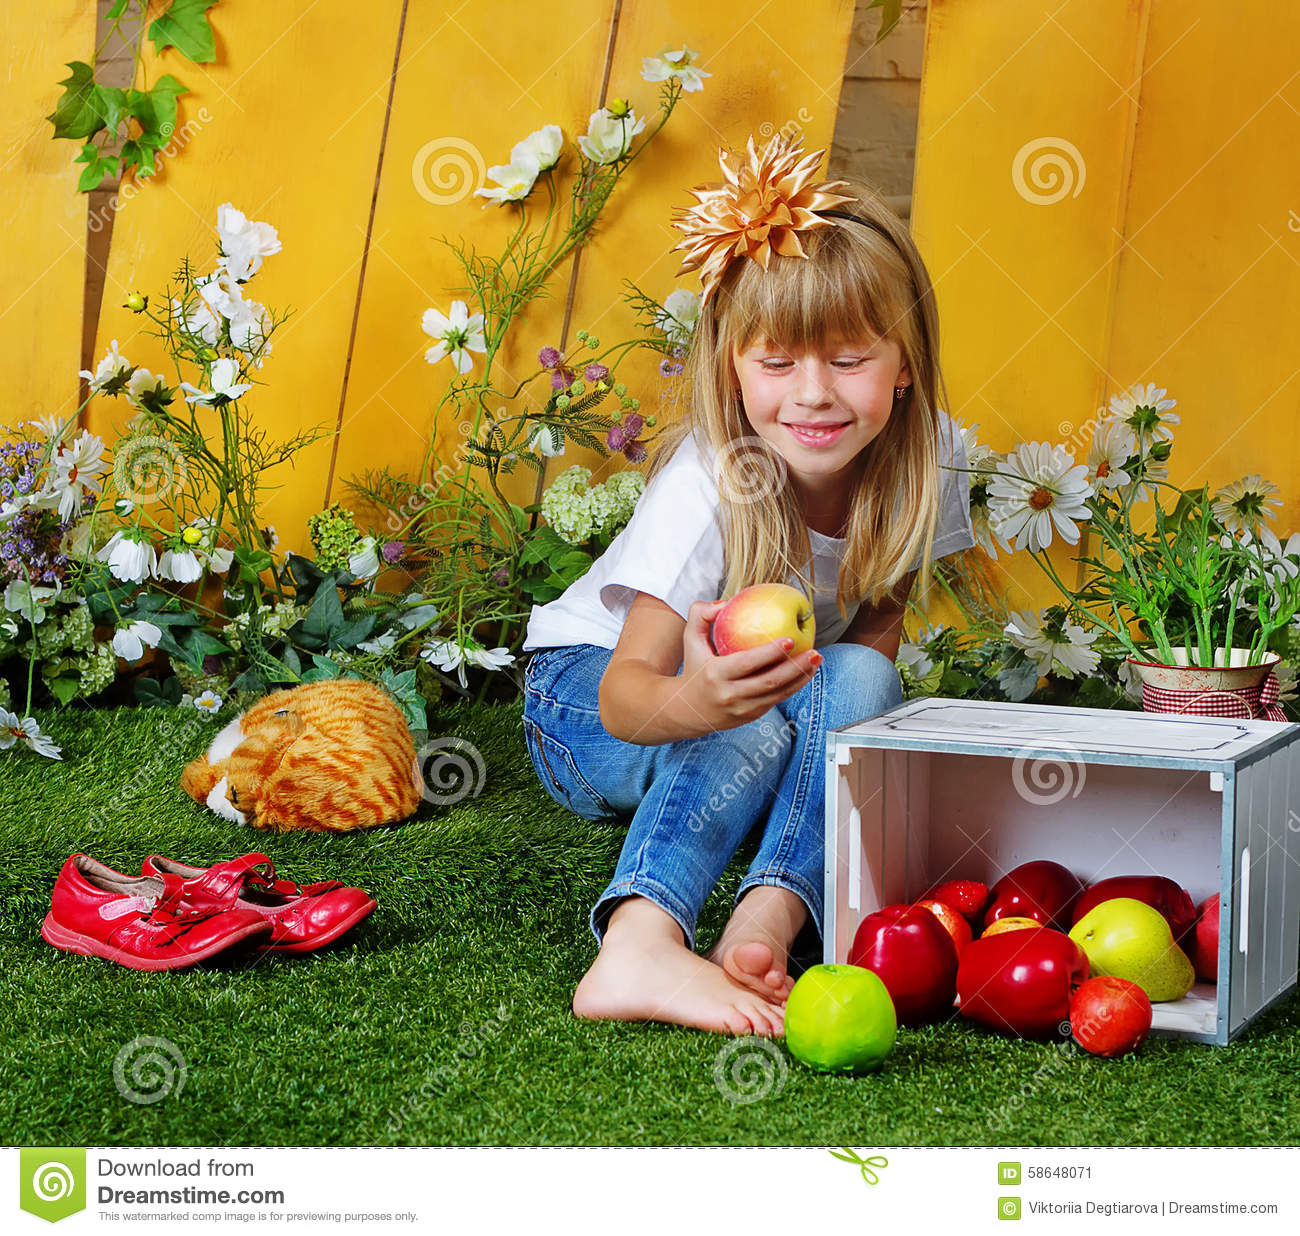 Girl 6 years old in garden with apples stock image image for Gardening tools for 6 year old